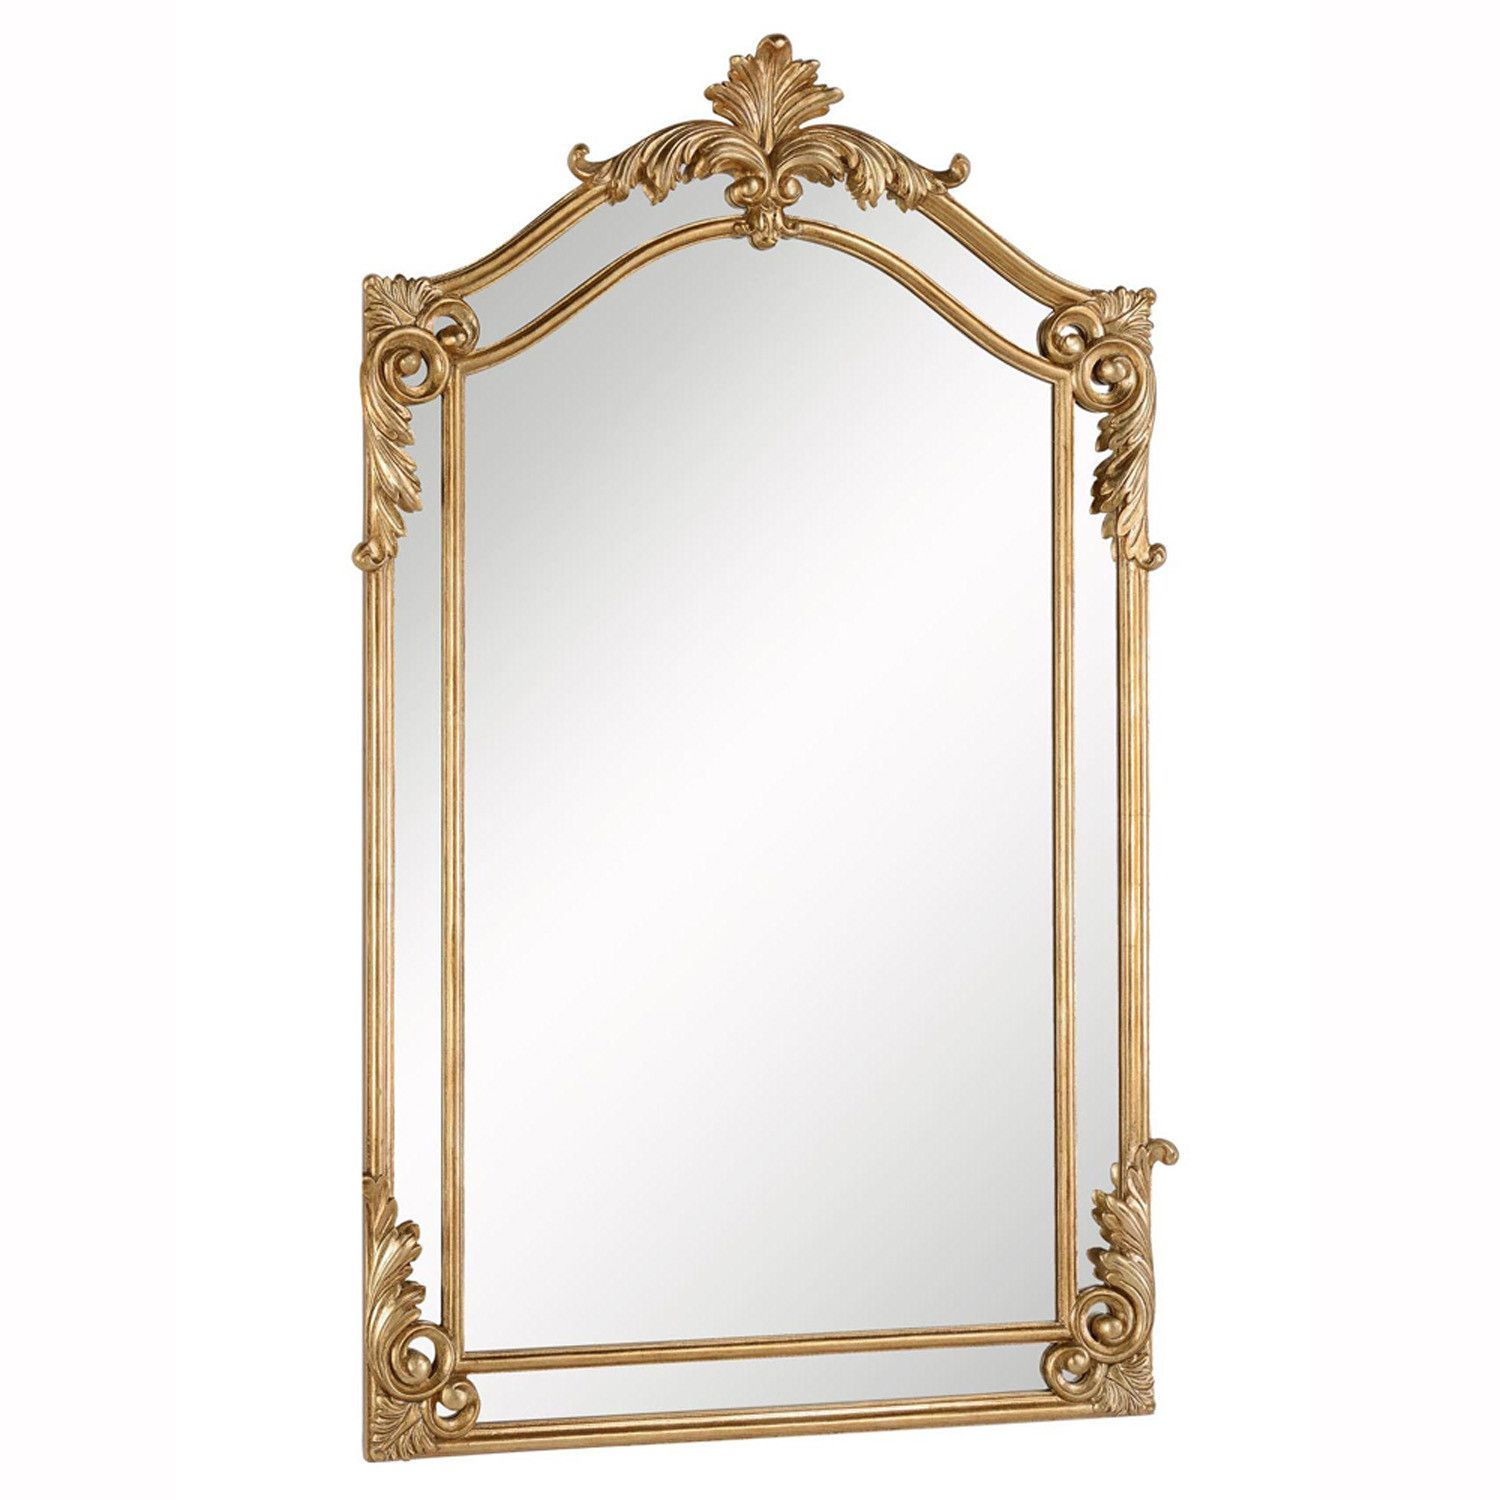 Elegant Lighting Mirror 30 X 48 2 1 4 Clear